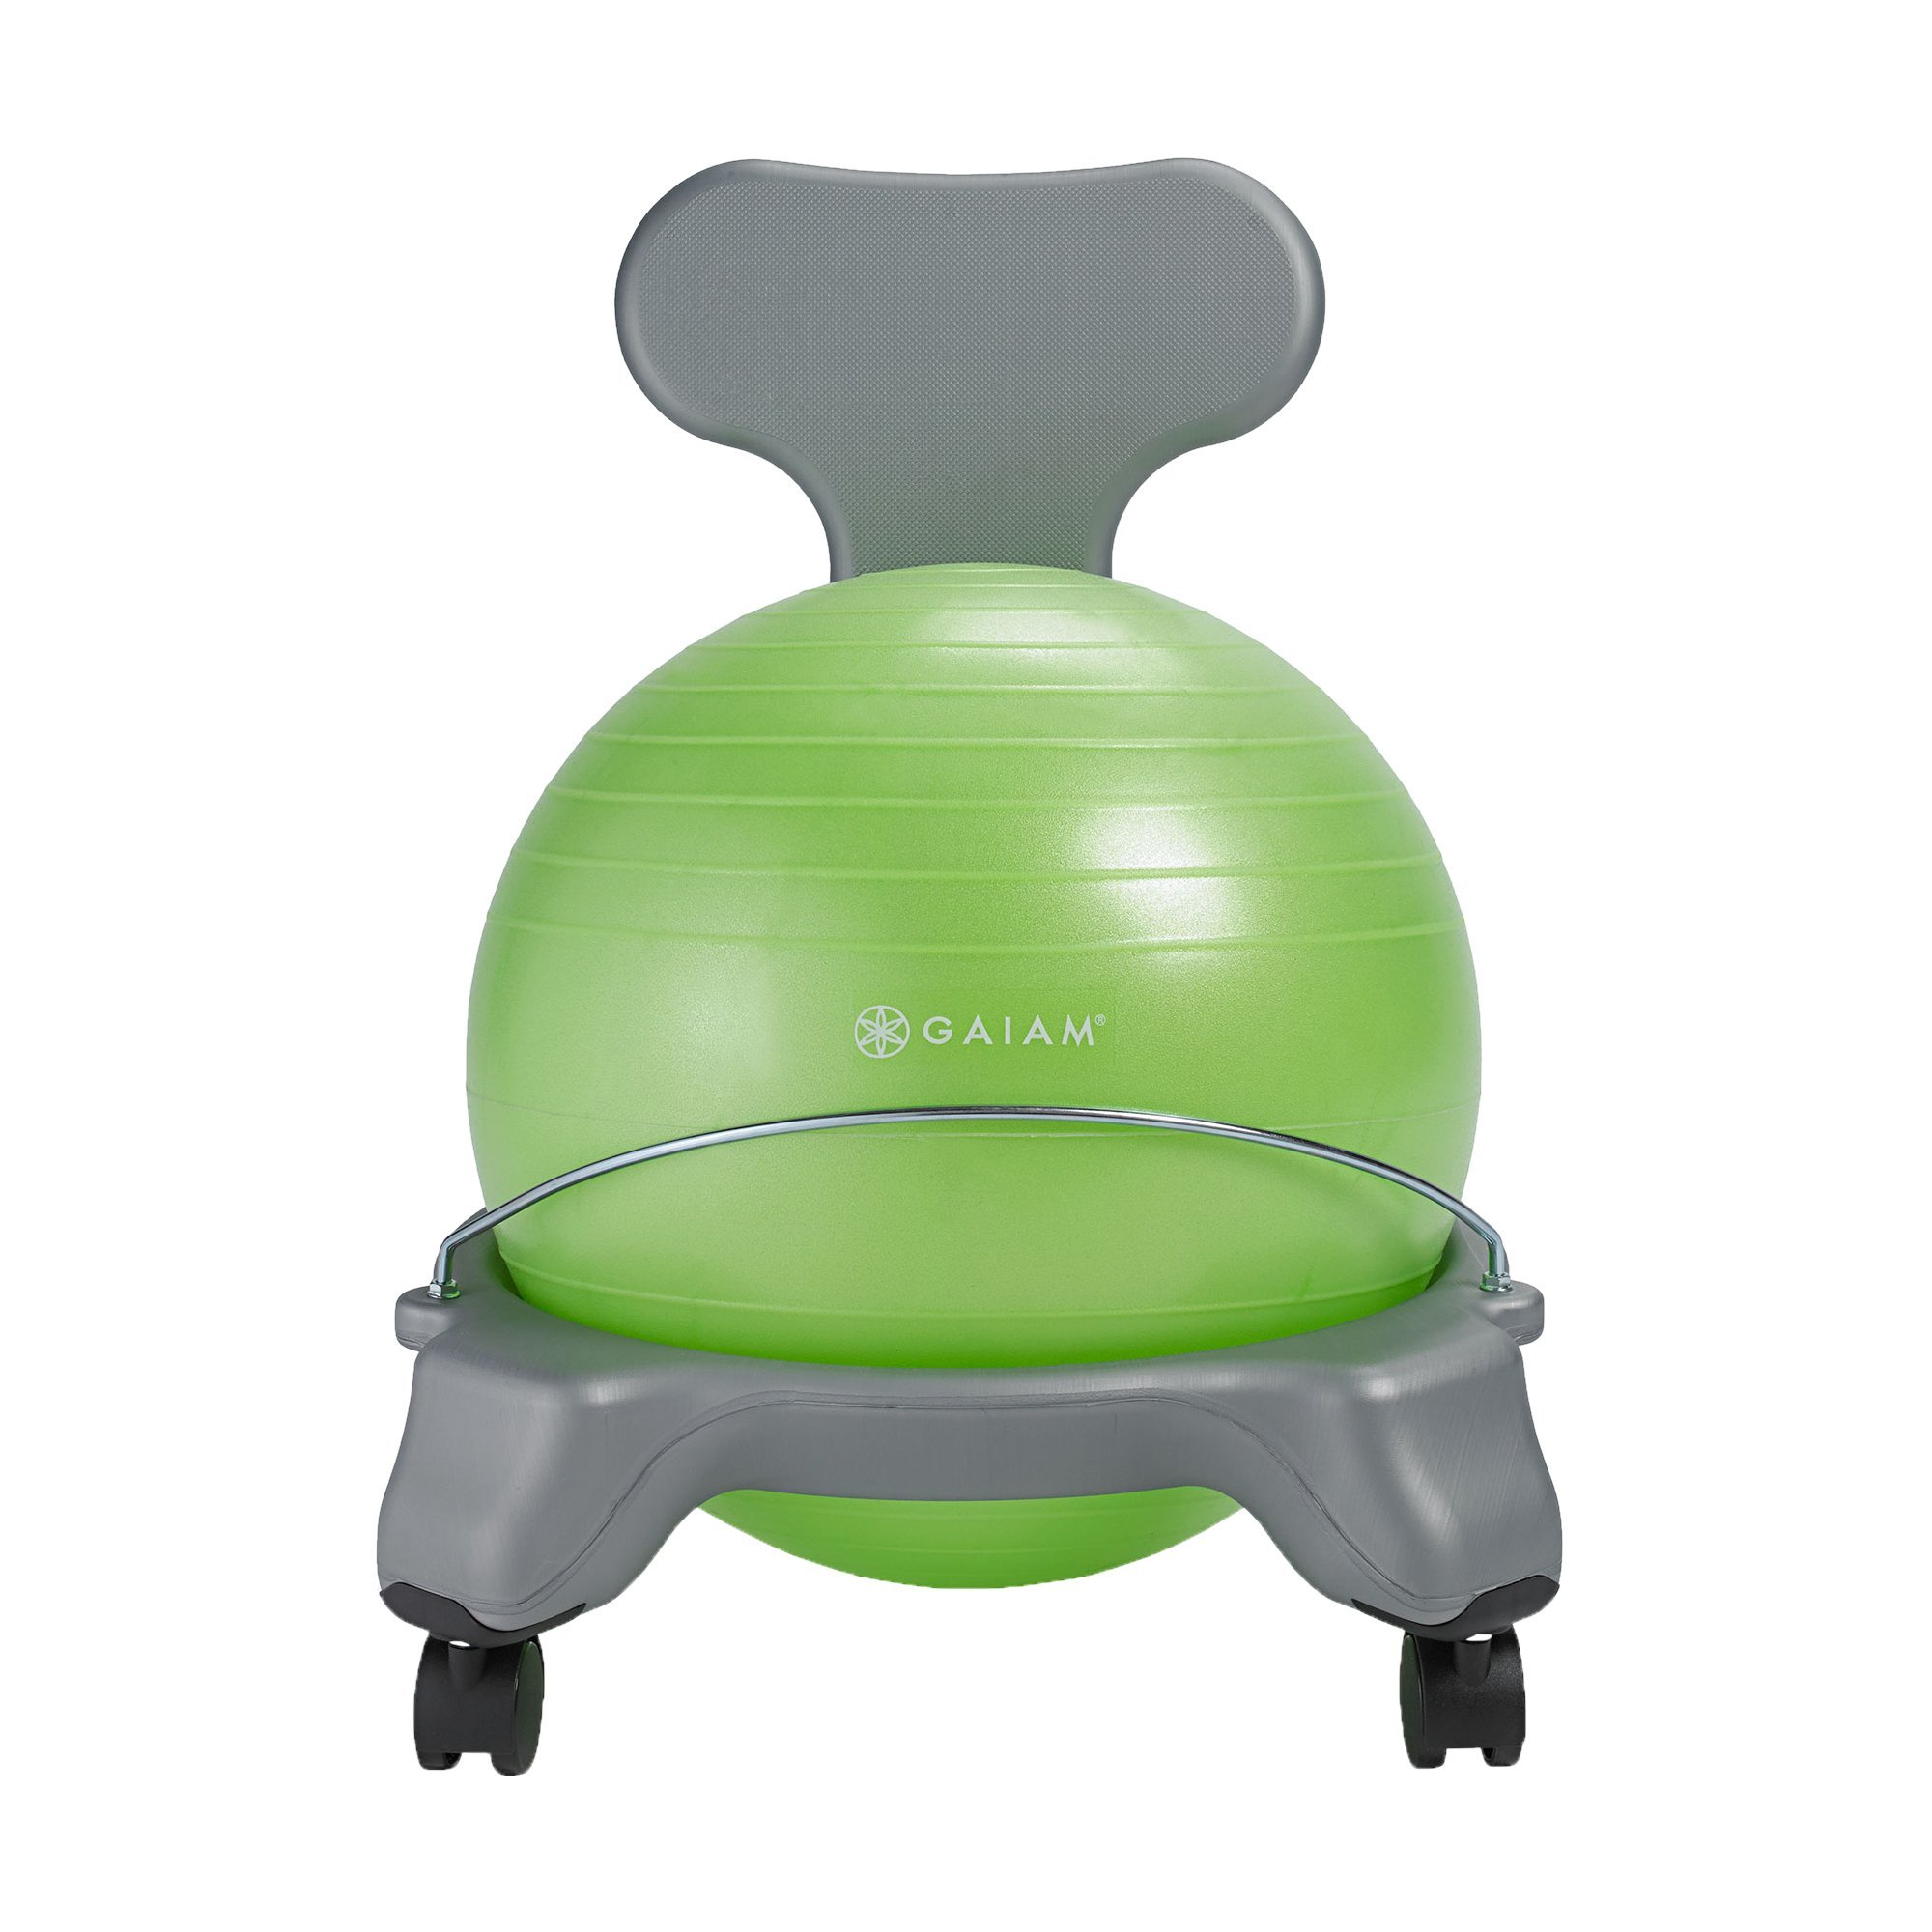 Gaiam Kids Balance Ball Chair - Classic Kid's Stability Ball Chair, Alternative School Classroom Flexible Desk Seating for Active Students with Satisfaction Guarantee, Green (Renewed)